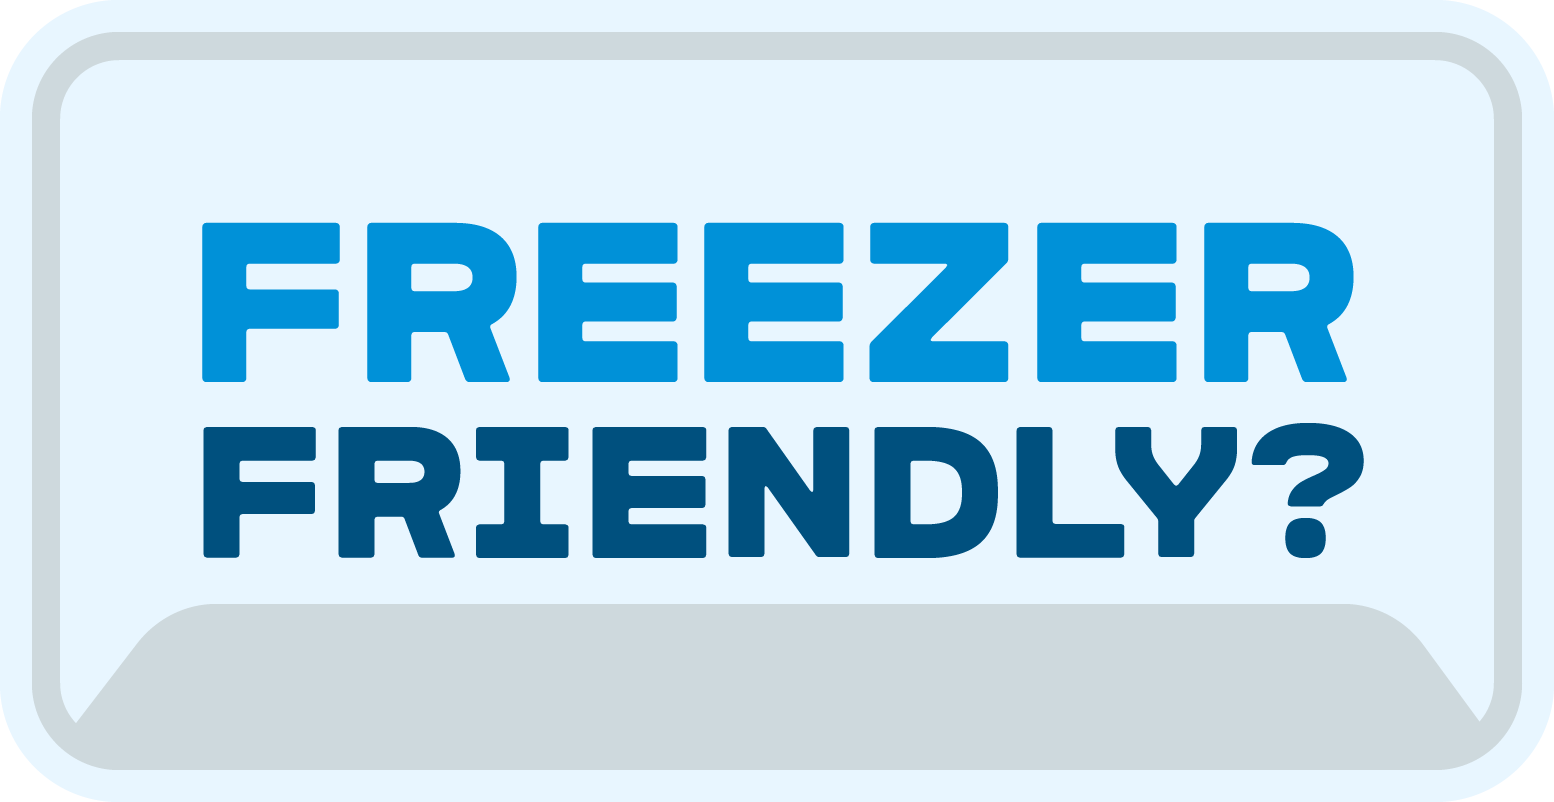 freezerfriendly.png